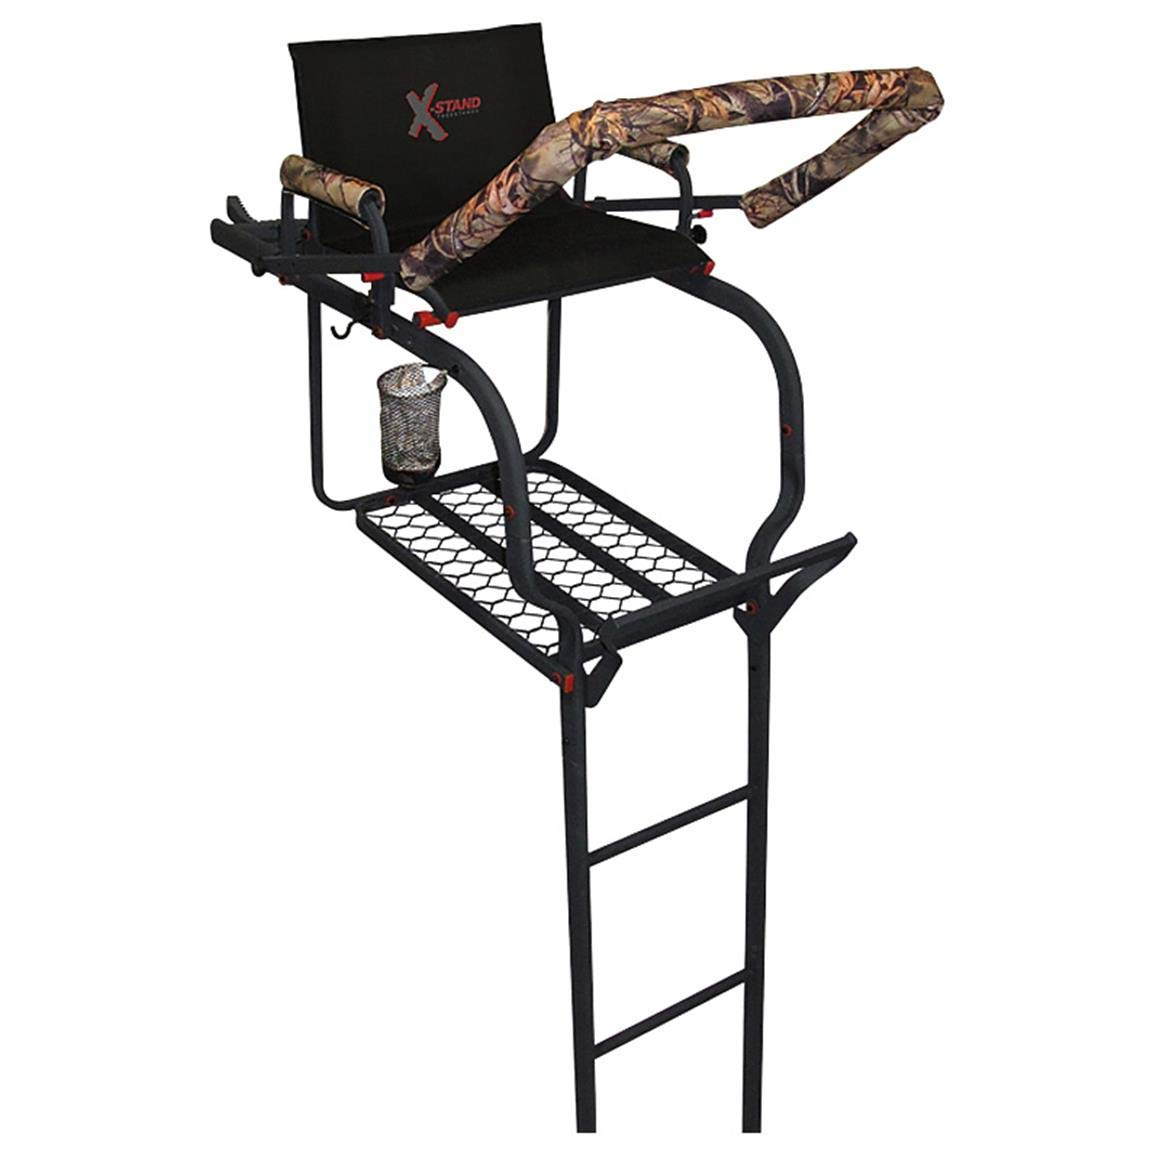 X-Stand Treestands The Duke 20' Single-Person Ladderstand Hunting Tree Stand, Black by X-Stand Treestands